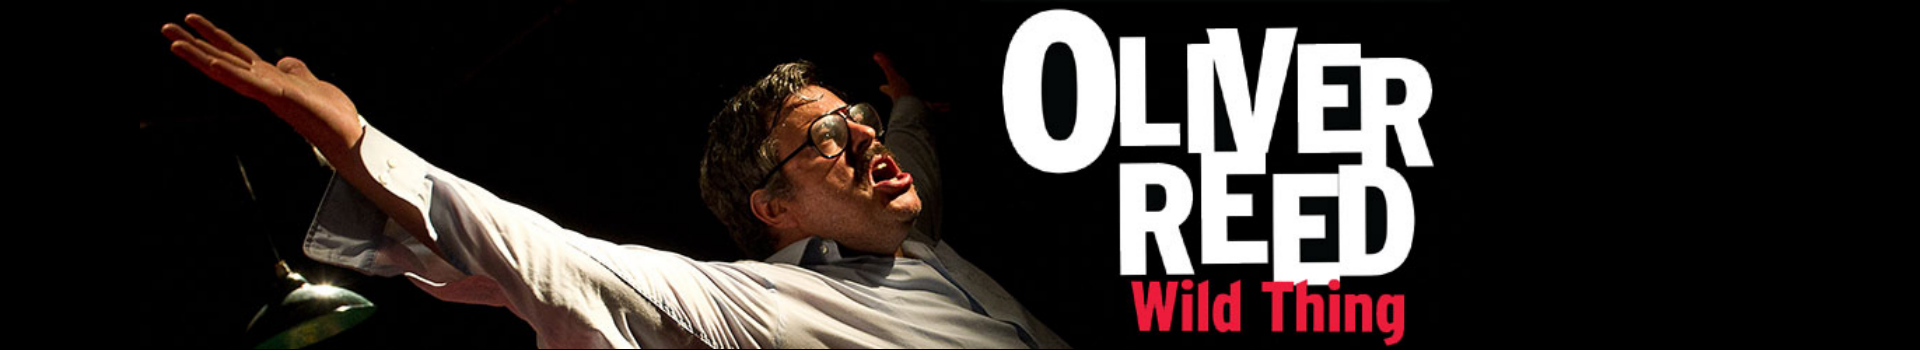 Oliver Reed: Wild Thing banner image